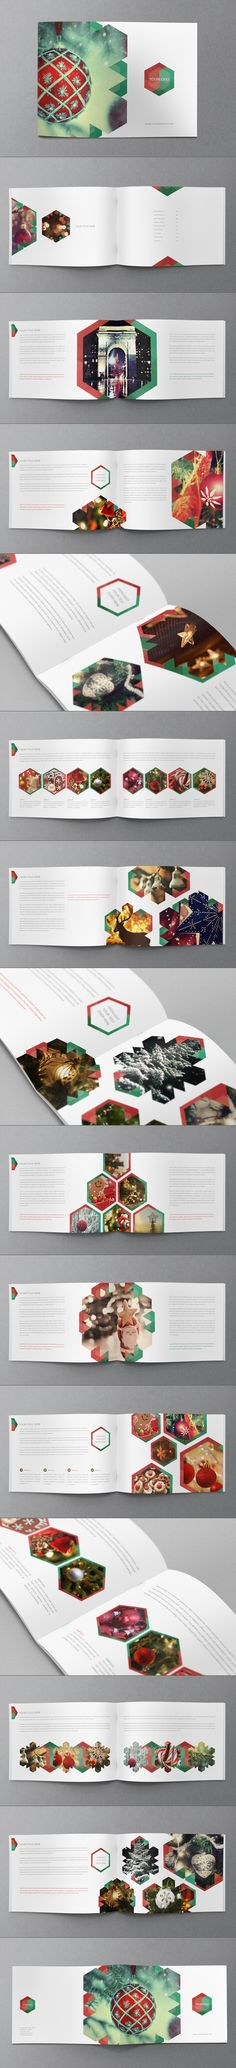 brochure plain background design luxury 193 best brochure design amp layout images of brochure plain background design Design Typo, Graphic Design Blog, Design Poster, Graphic Design Inspiration, Typography Design, Design Art, Design Ideas, Design Brochure, Booklet Design